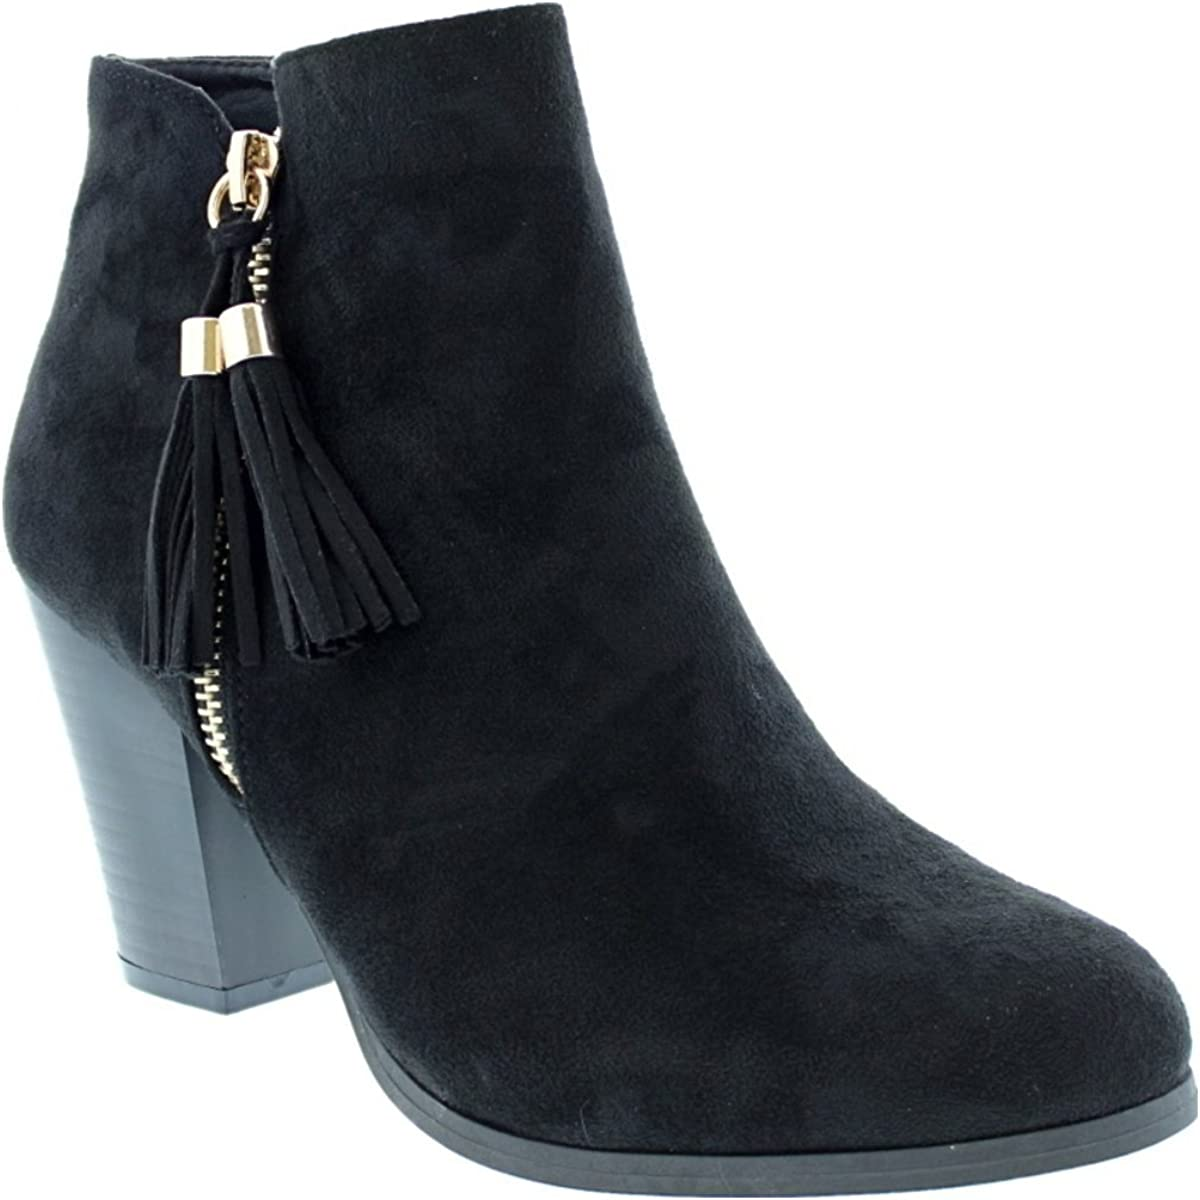 LOV Shoes Womens Tassle Accent Suede Ankle Bootie